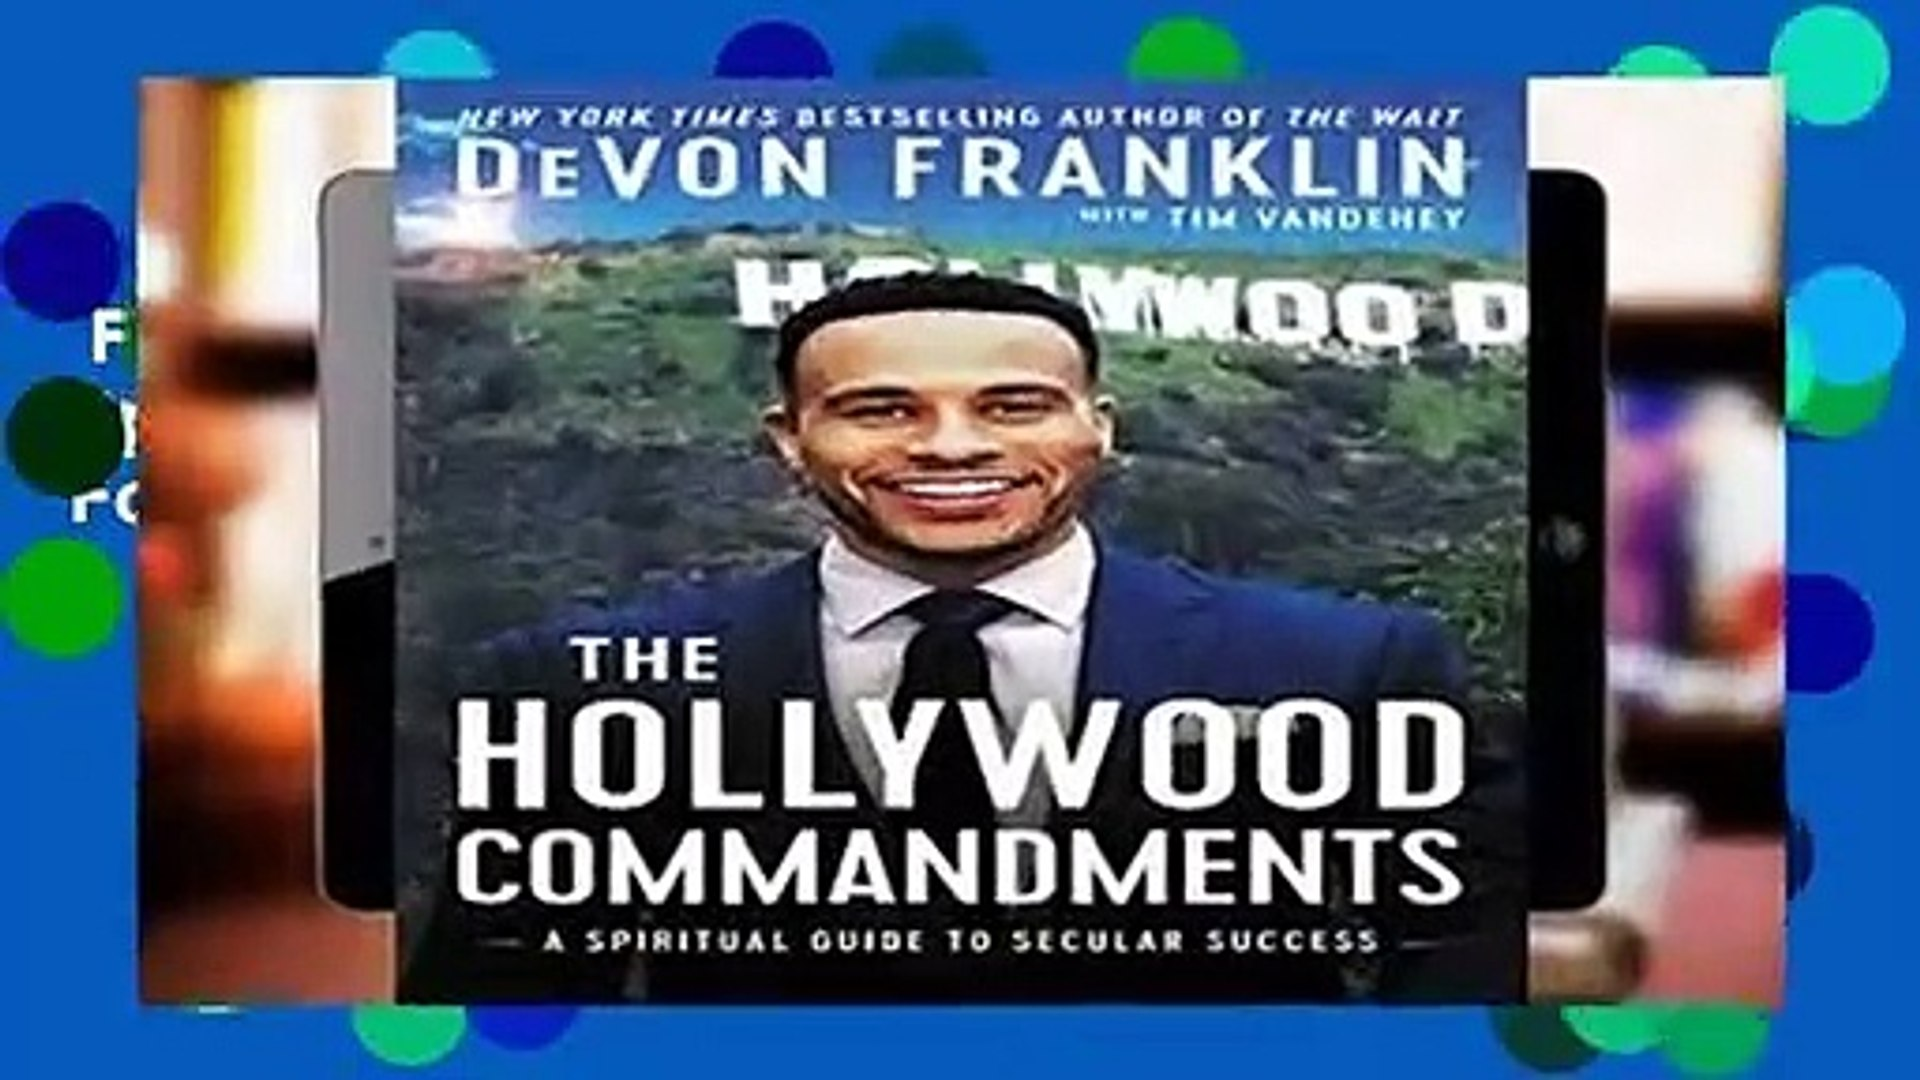 Full E-book  The Hollywood Commandments: A Spiritual Guide to Secular Success  For Kindle